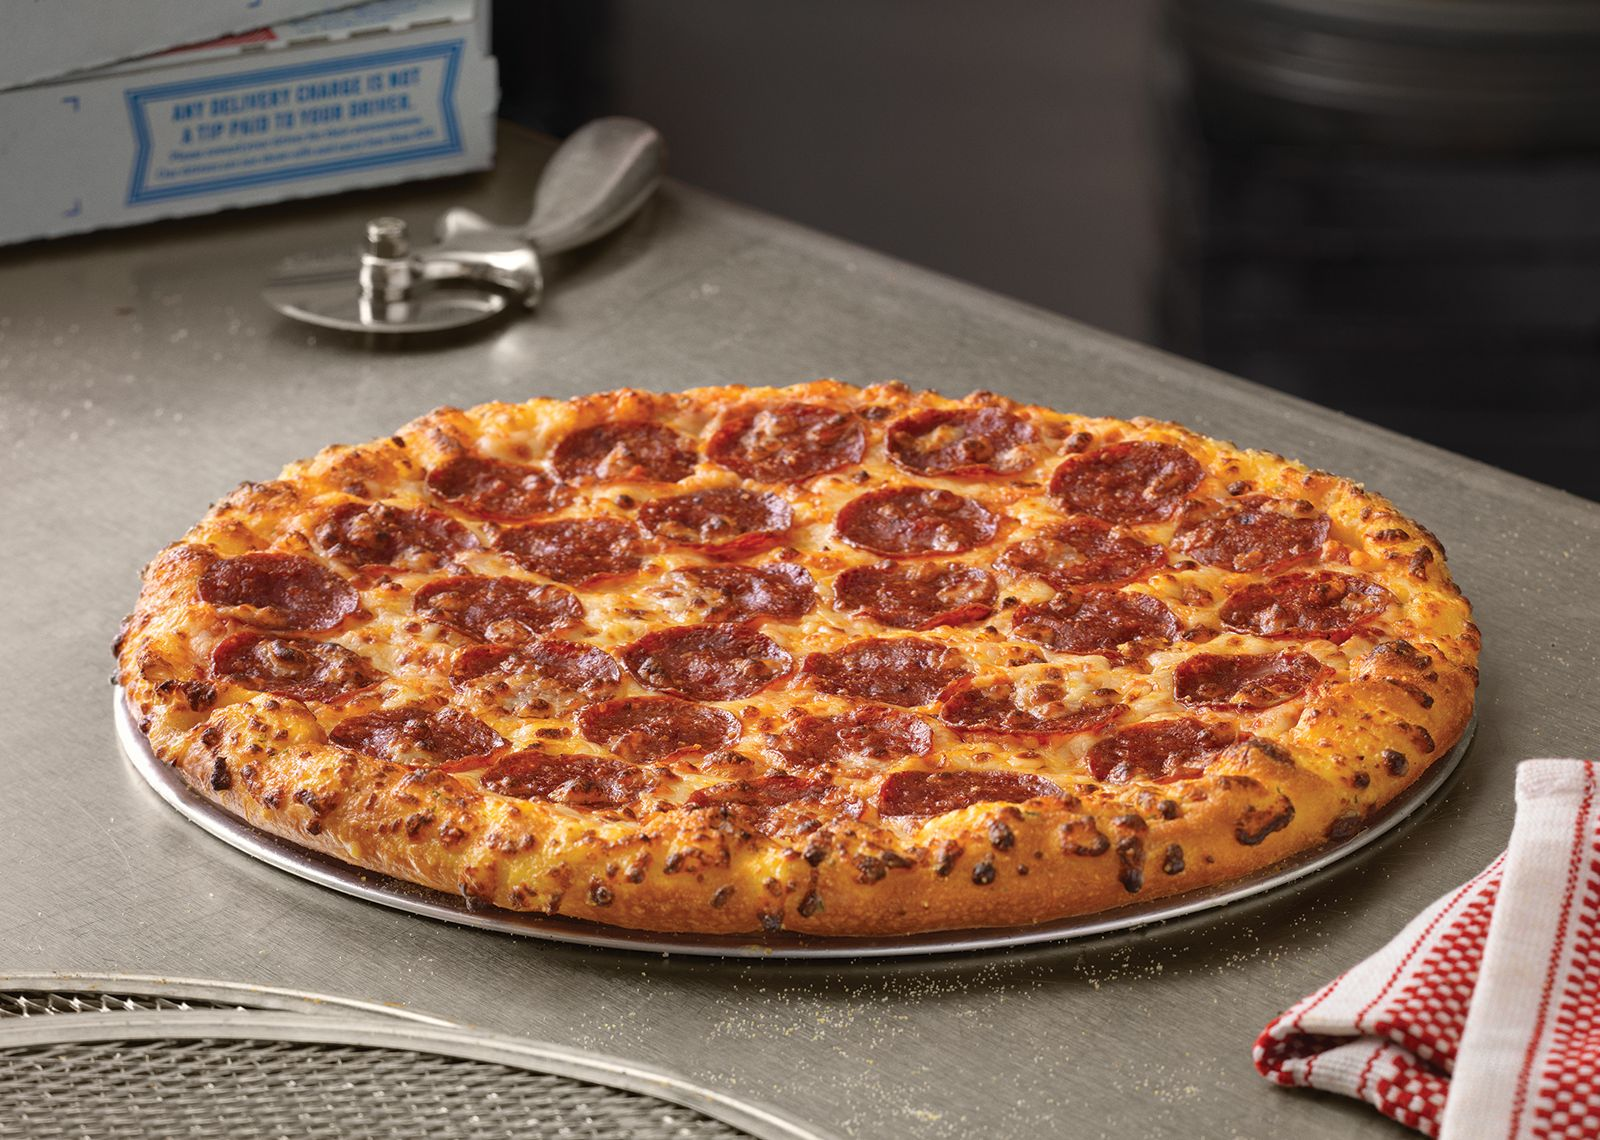 Join the Digital Side with Domino's 50 Percent Off Deal Starting Cyber Monday